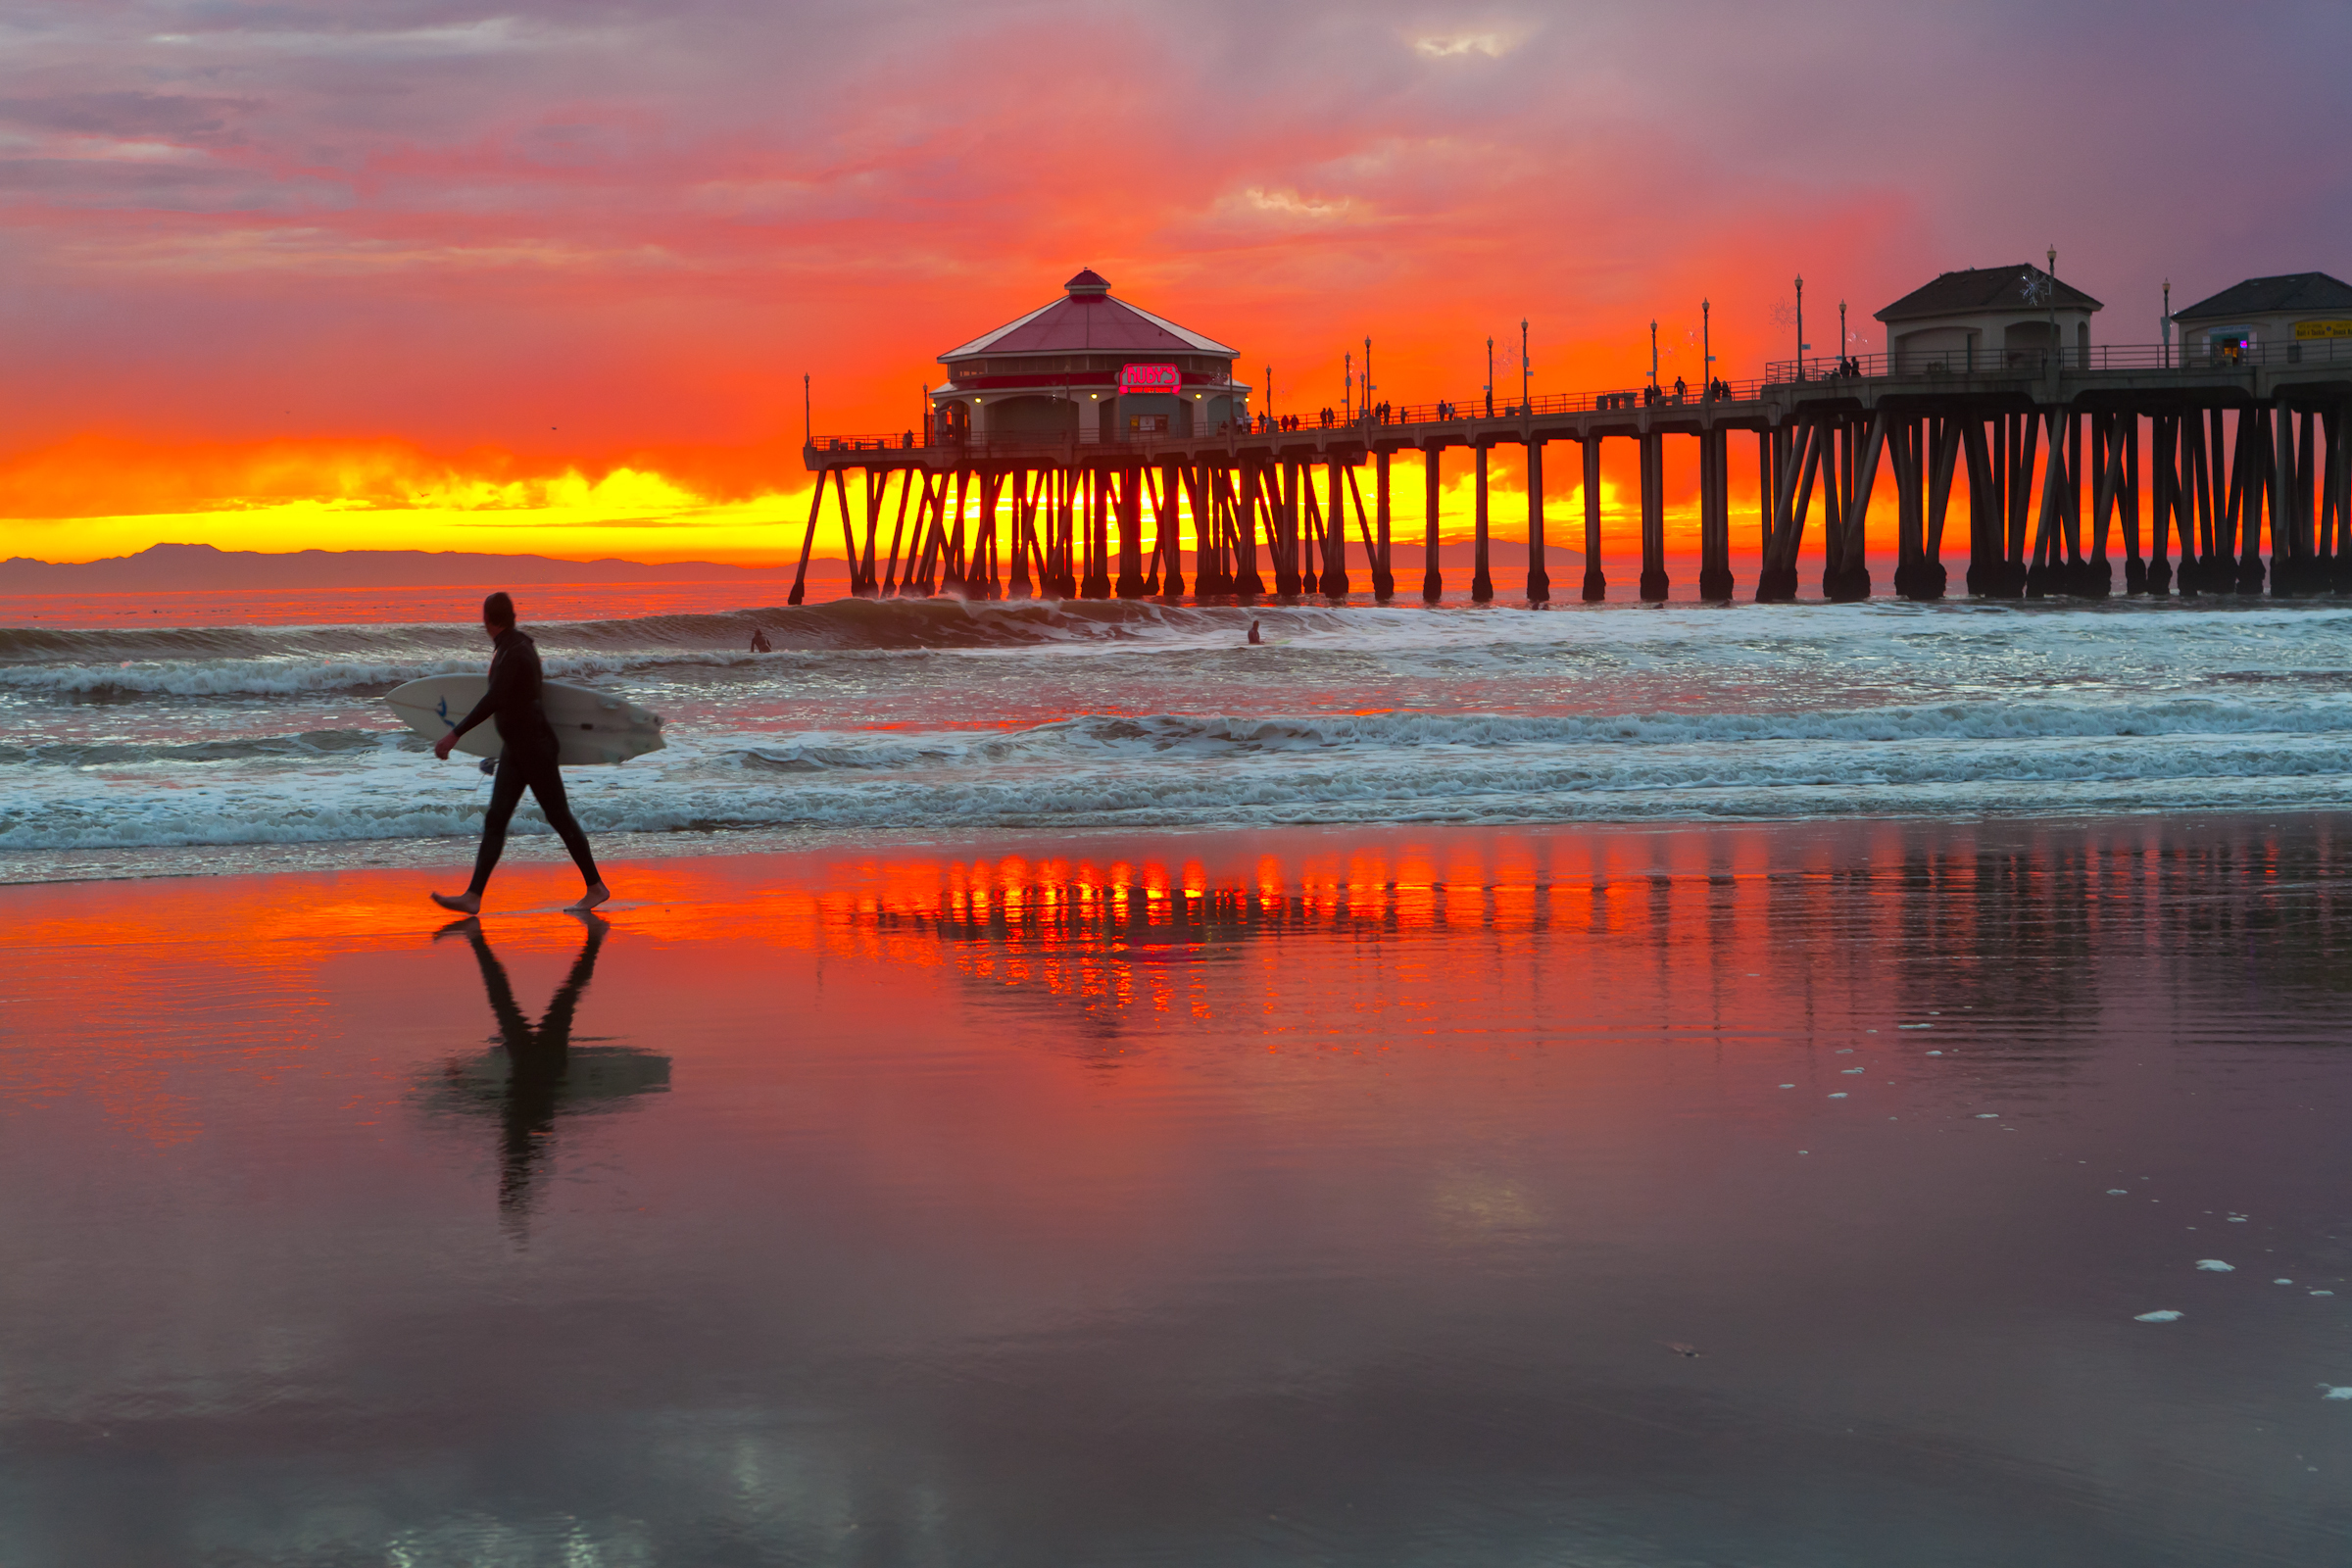 California Beach Sunset With Surfer Pictures To Pin On